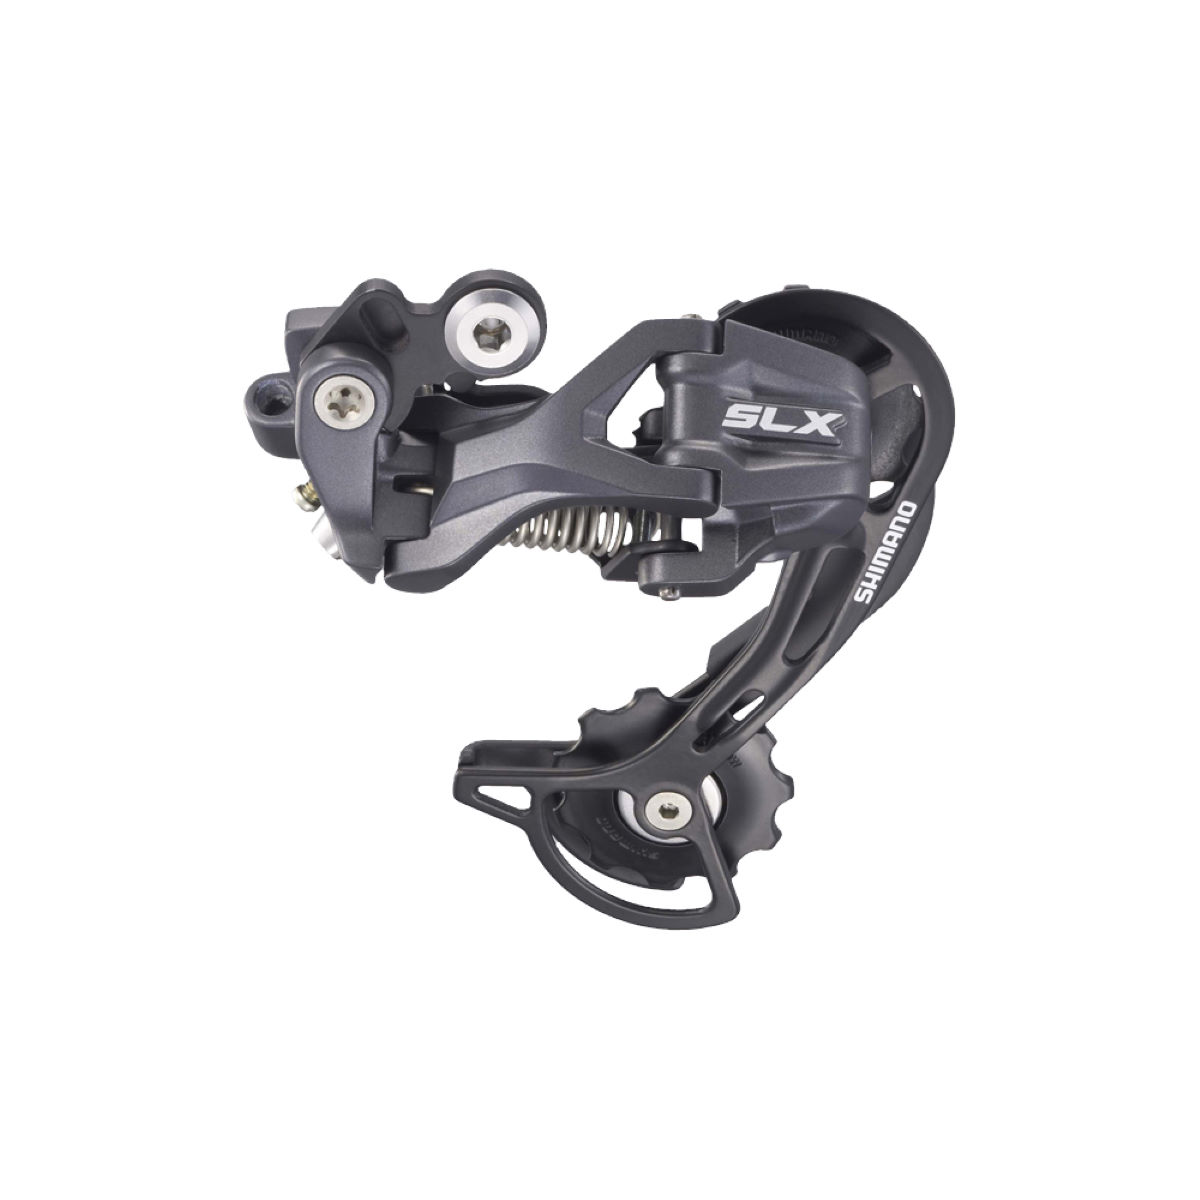 Shimano SLX M662 9 Speed Shadow Rear Derailleur